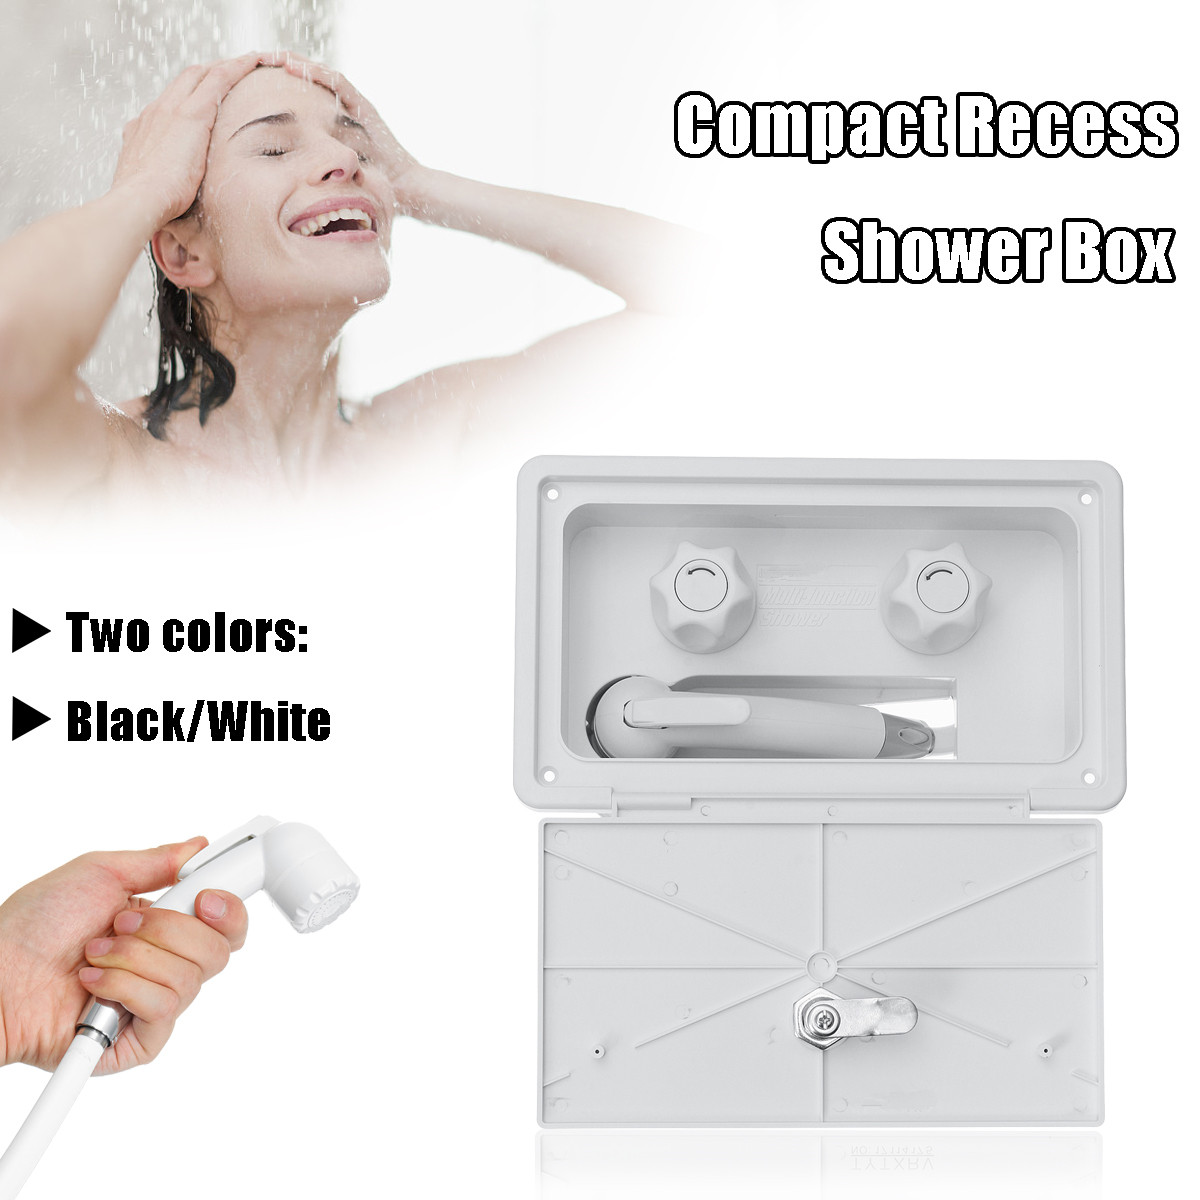 Xueqin Portable RV Exterior Shower Box Kit Shower Faucet Lock-Includes Hot And Cold Water Mixer Artic Latch For Caravan TrailerXueqin Portable RV Exterior Shower Box Kit Shower Faucet Lock-Includes Hot And Cold Water Mixer Artic Latch For Caravan Trailer